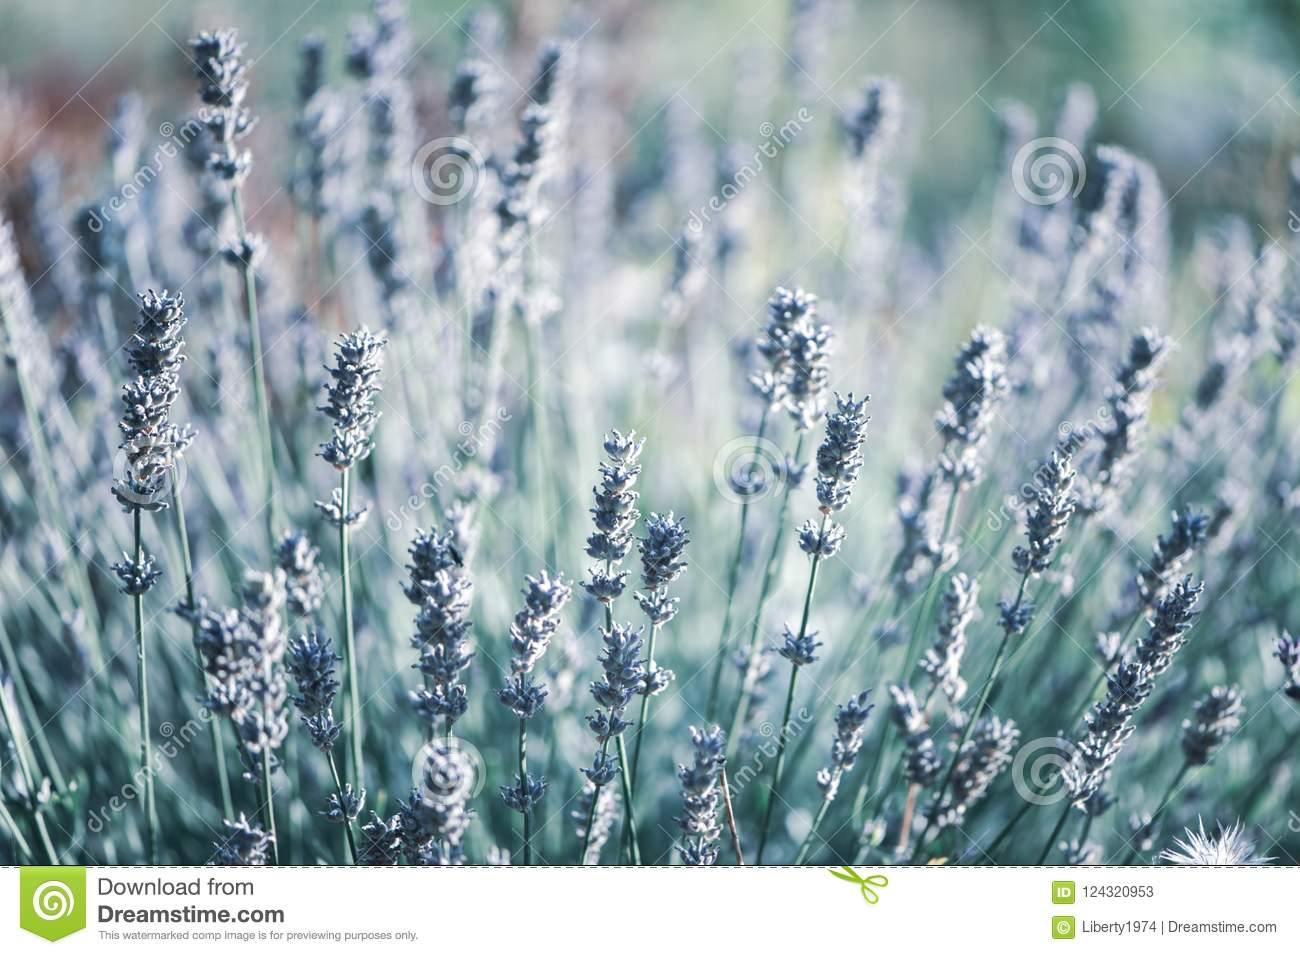 Lavender Flowers macro. Stylish, tinted floral background.